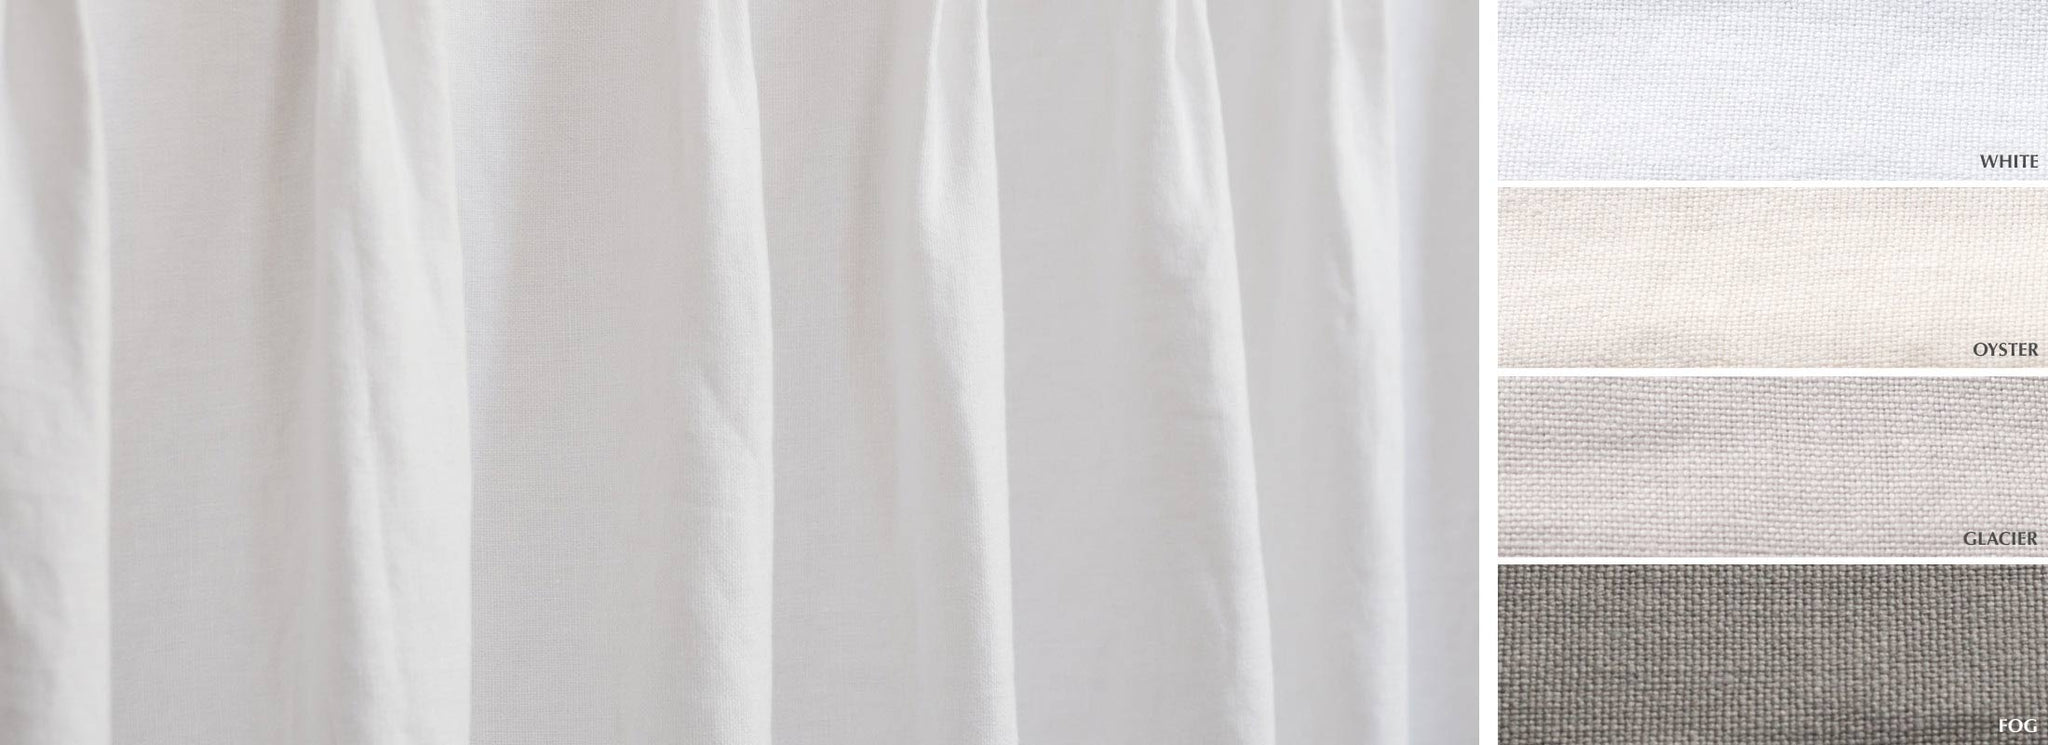 Faldners - Collection stone washed belgian linen heavy weight semi-sheer Fabric